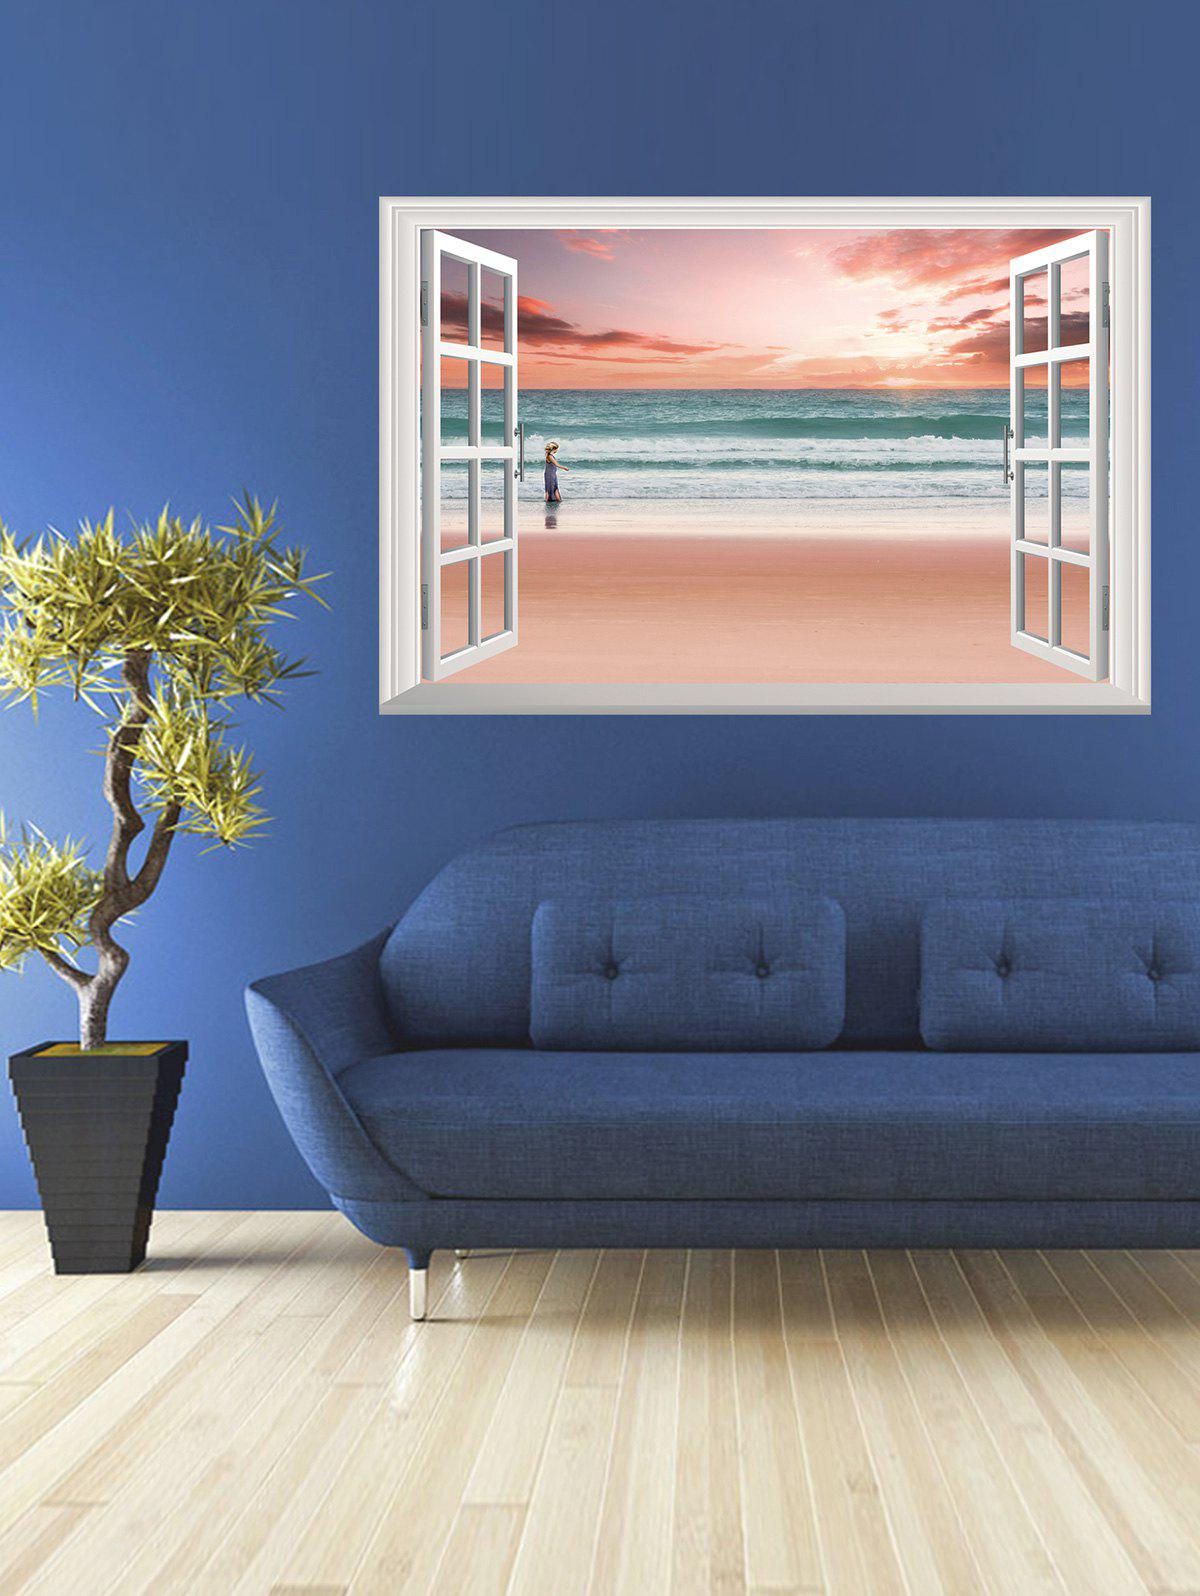 Removable 3D Sunset Beach Fake Window Wall StickerHOME<br><br>Size: 50*70CM; Color: PINK; Wall Sticker Type: 3D Wall Stickers; Functions: Decorative Wall Stickers; Theme: Landscape; Material: PVC; Feature: Removable; Weight: 0.3146kg; Package Contents: 1 x Wall Sticker;